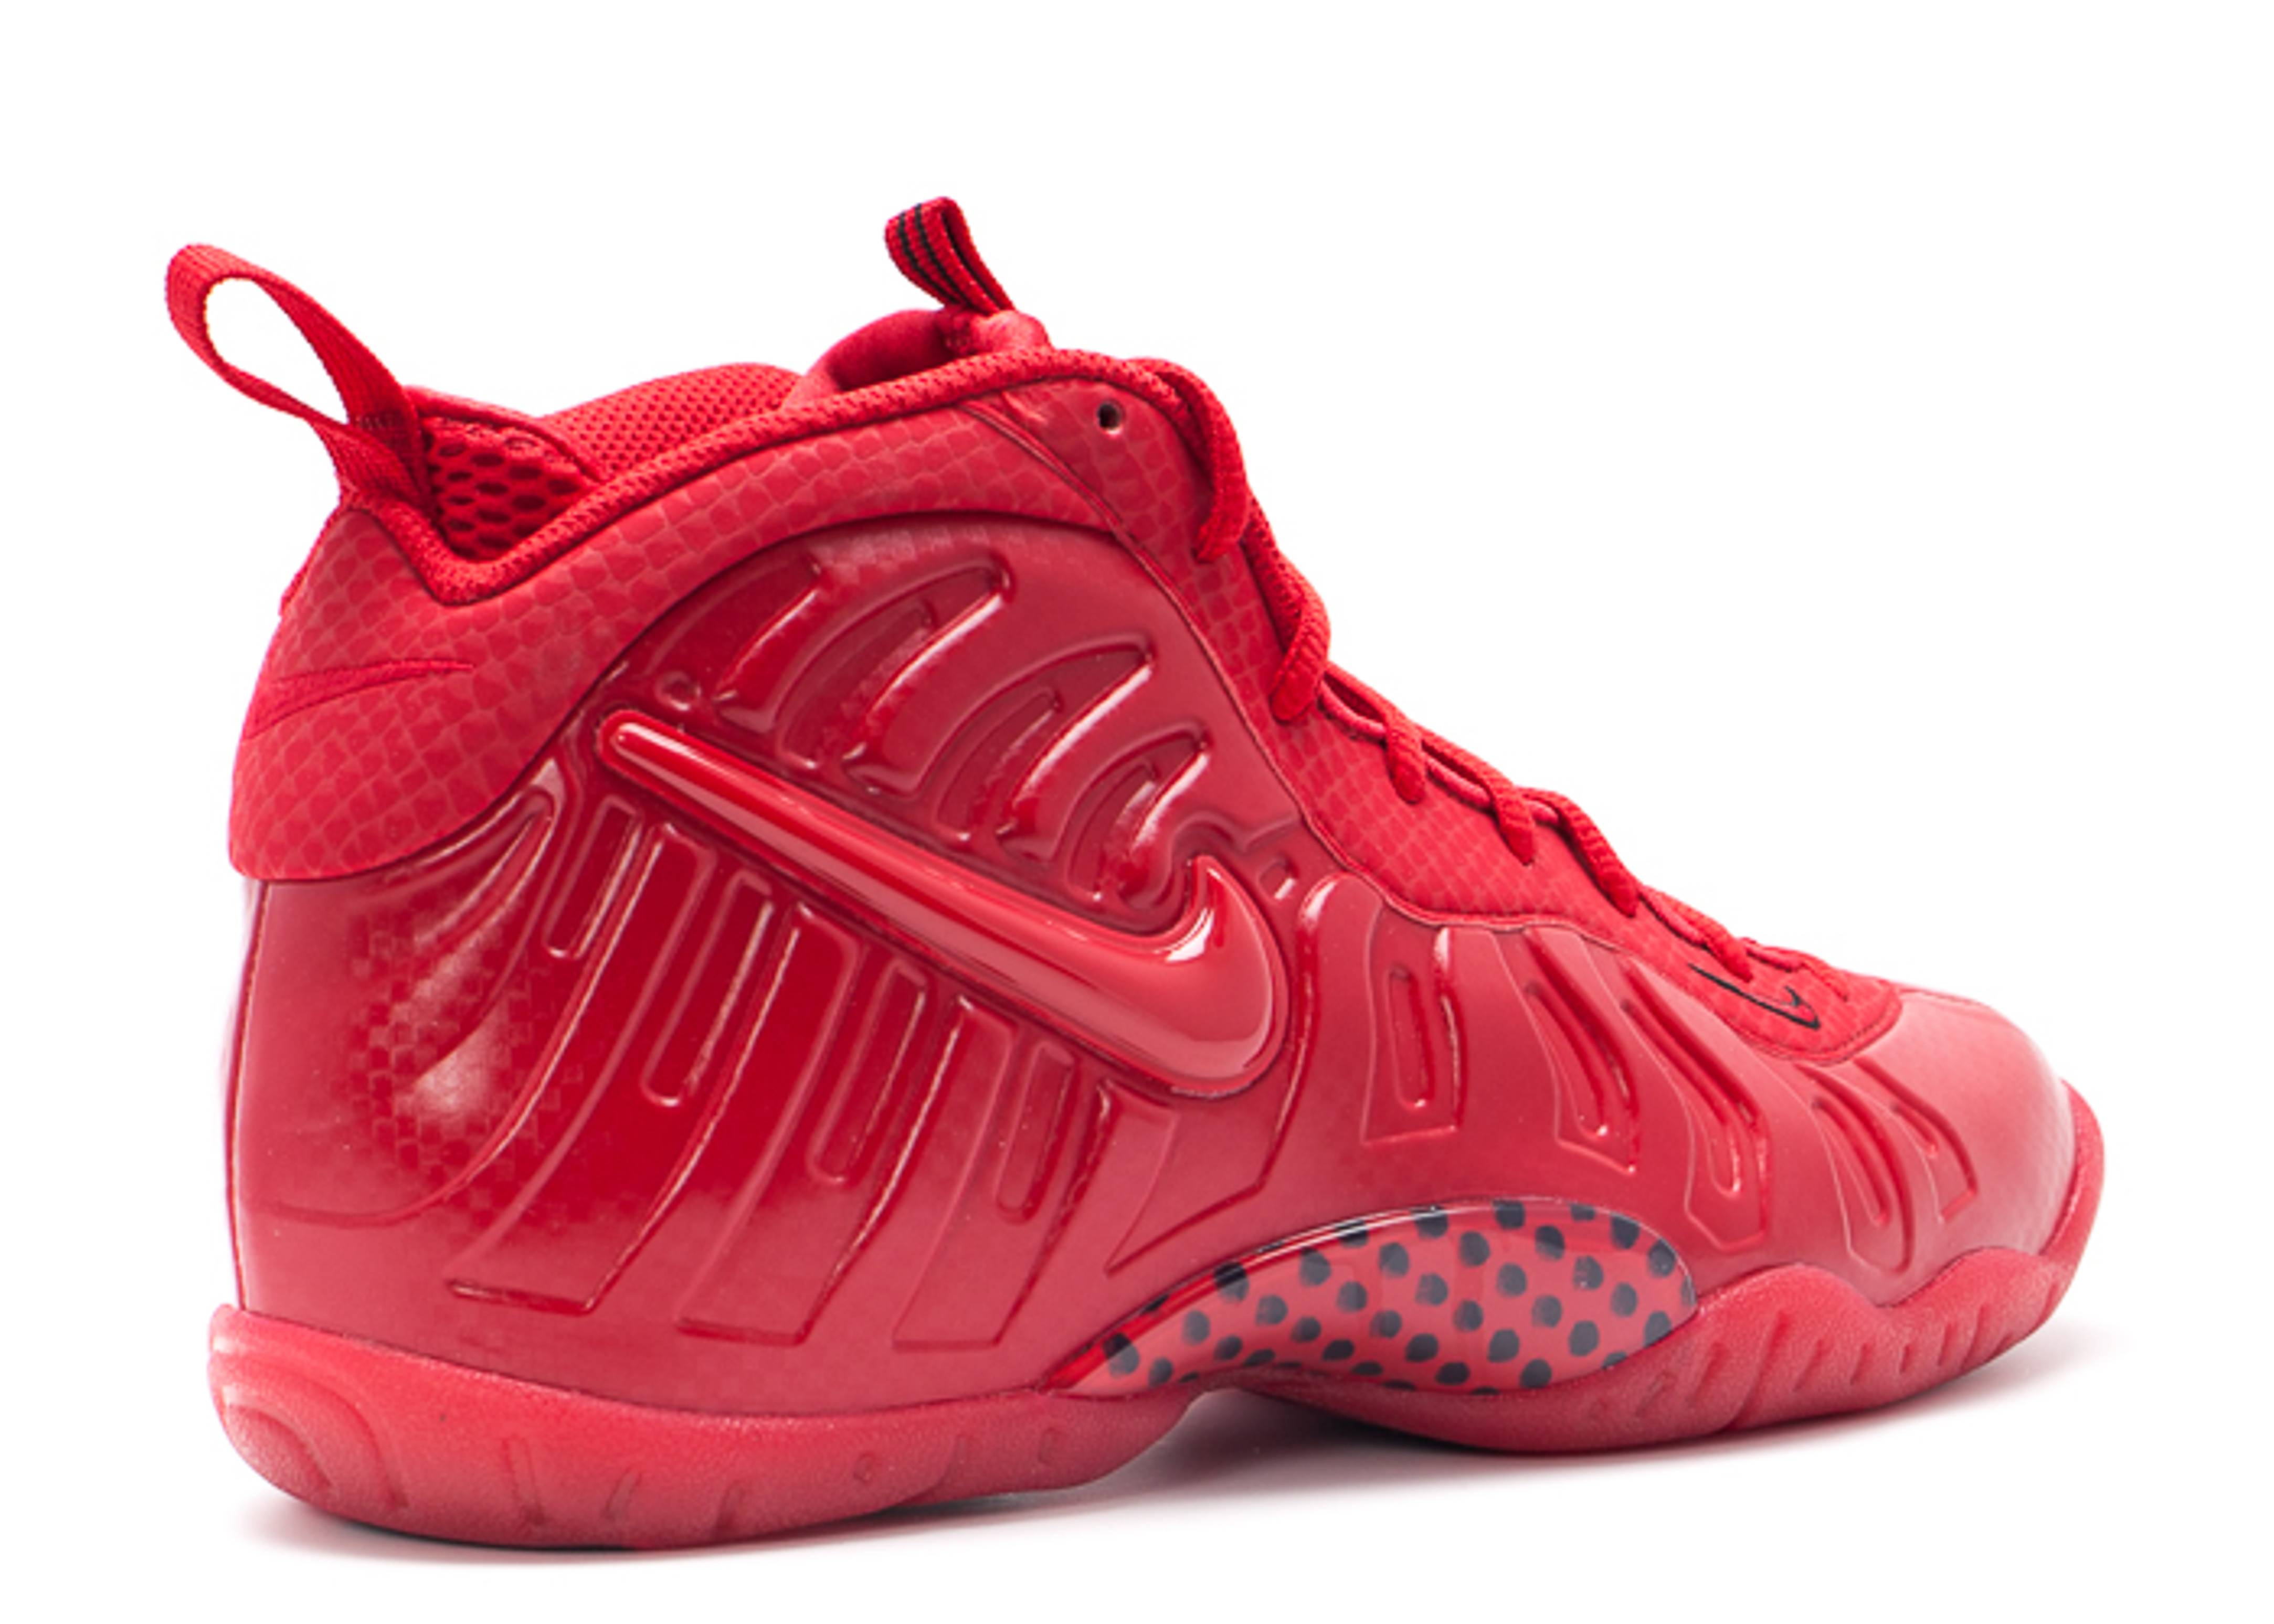 Nike Foamposite Gym Red Grade School